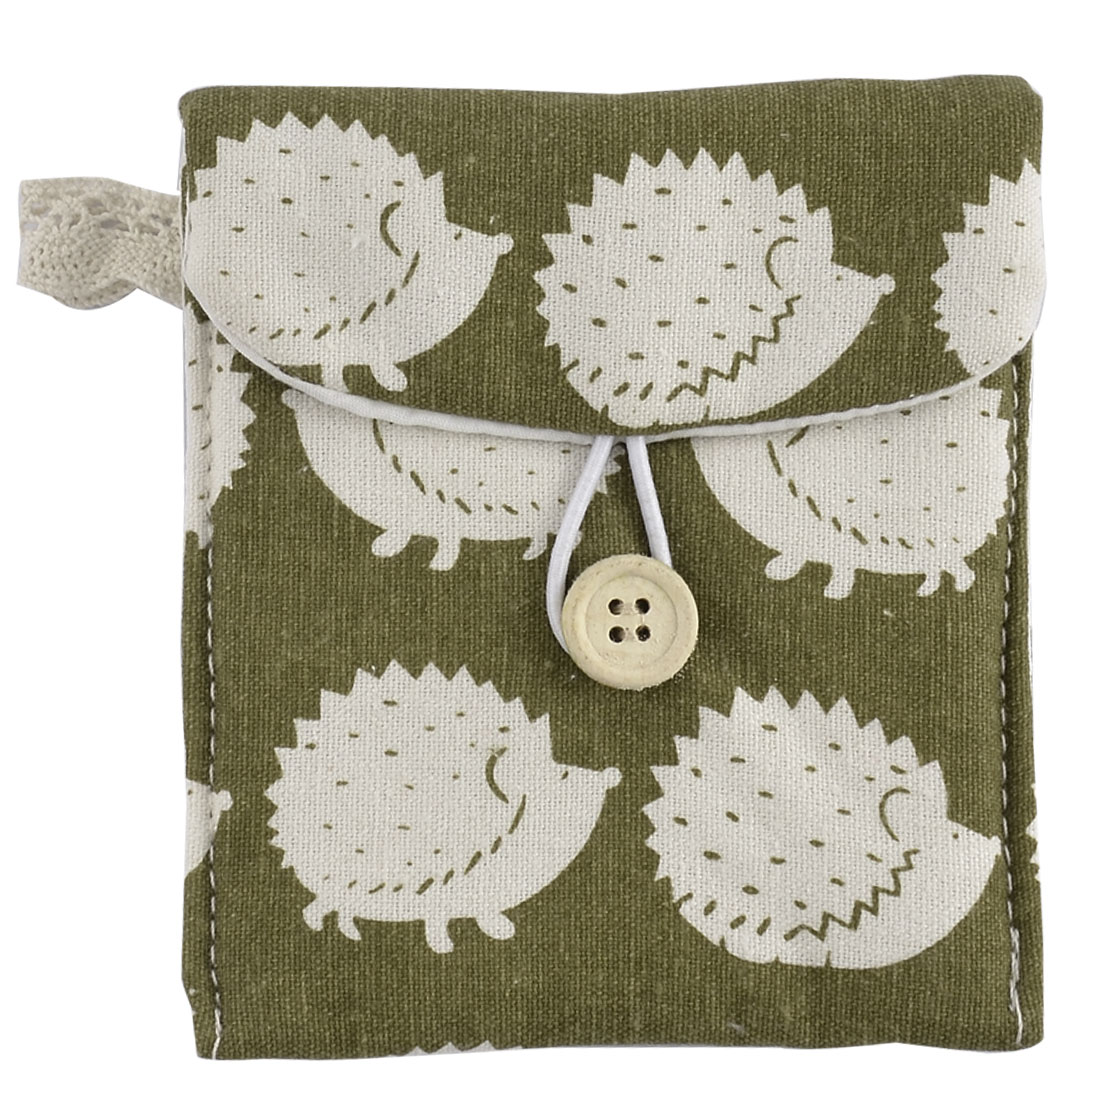 Linen Hedgehog Pattern Button Closure Sanitary Napkin Pad Bag White Olive Green